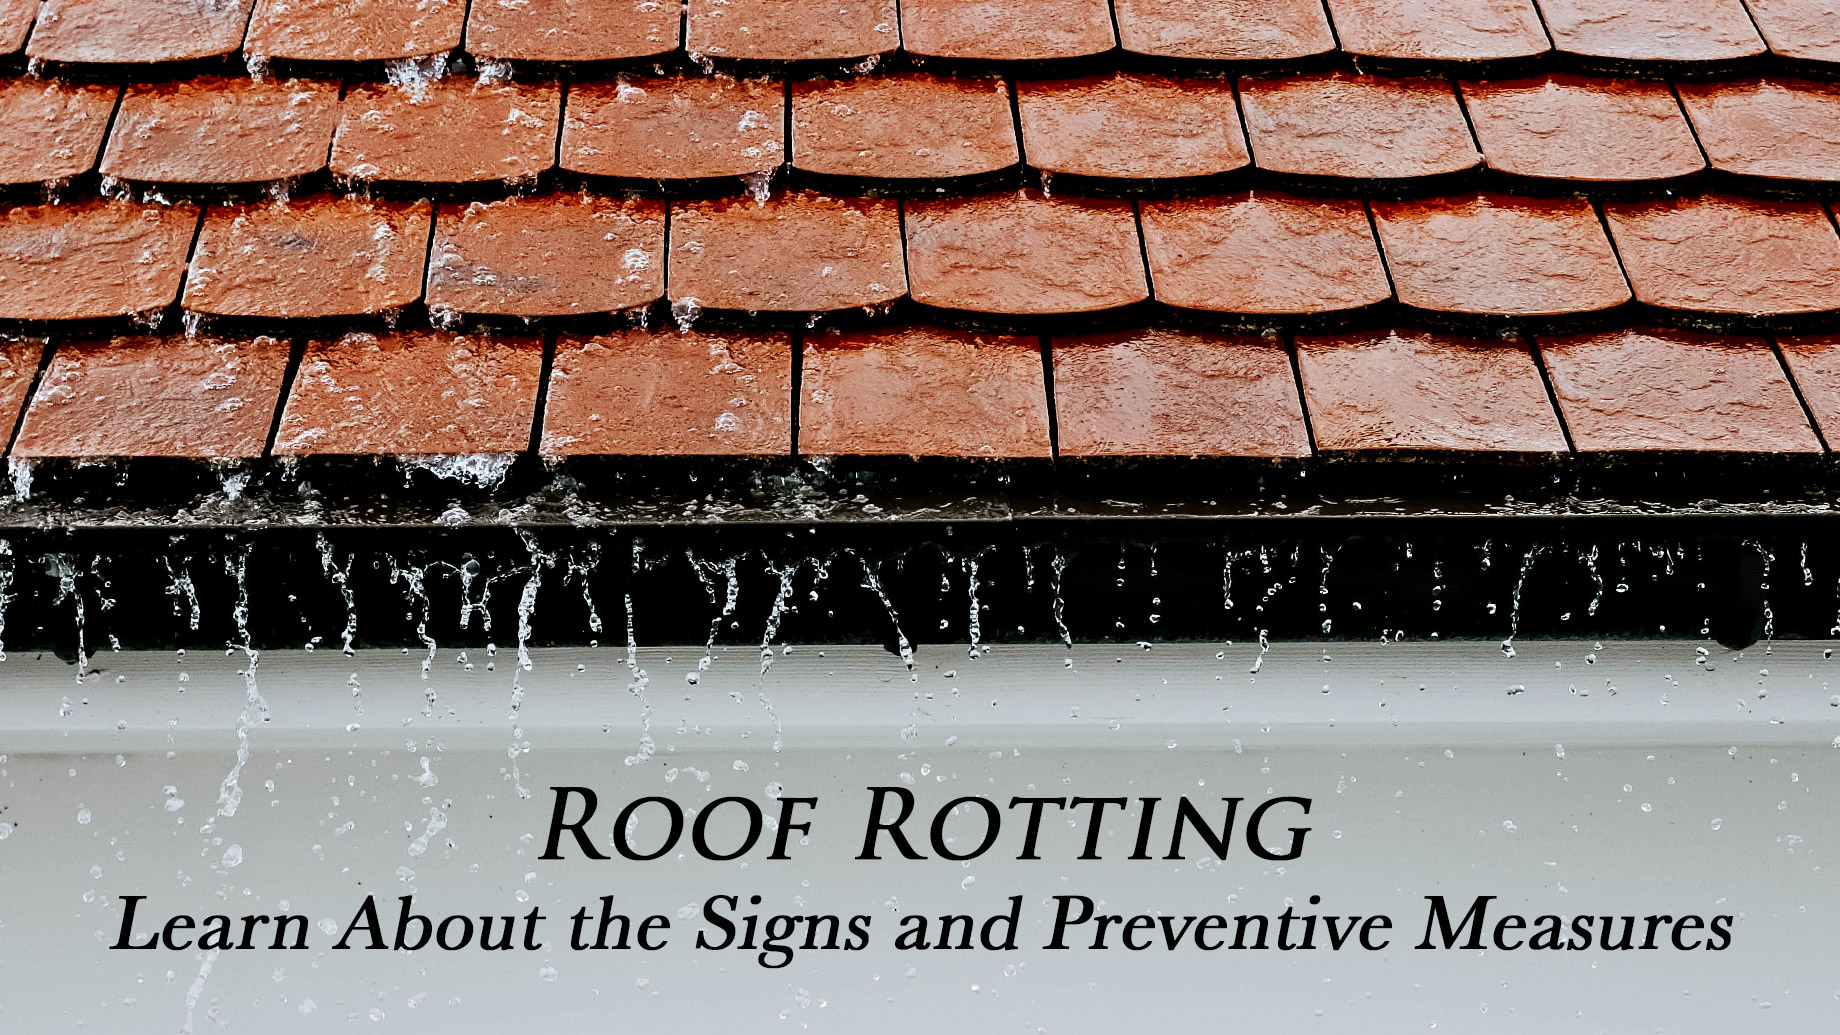 Roof Rotting - Learn About the Signs and Preventive Measures